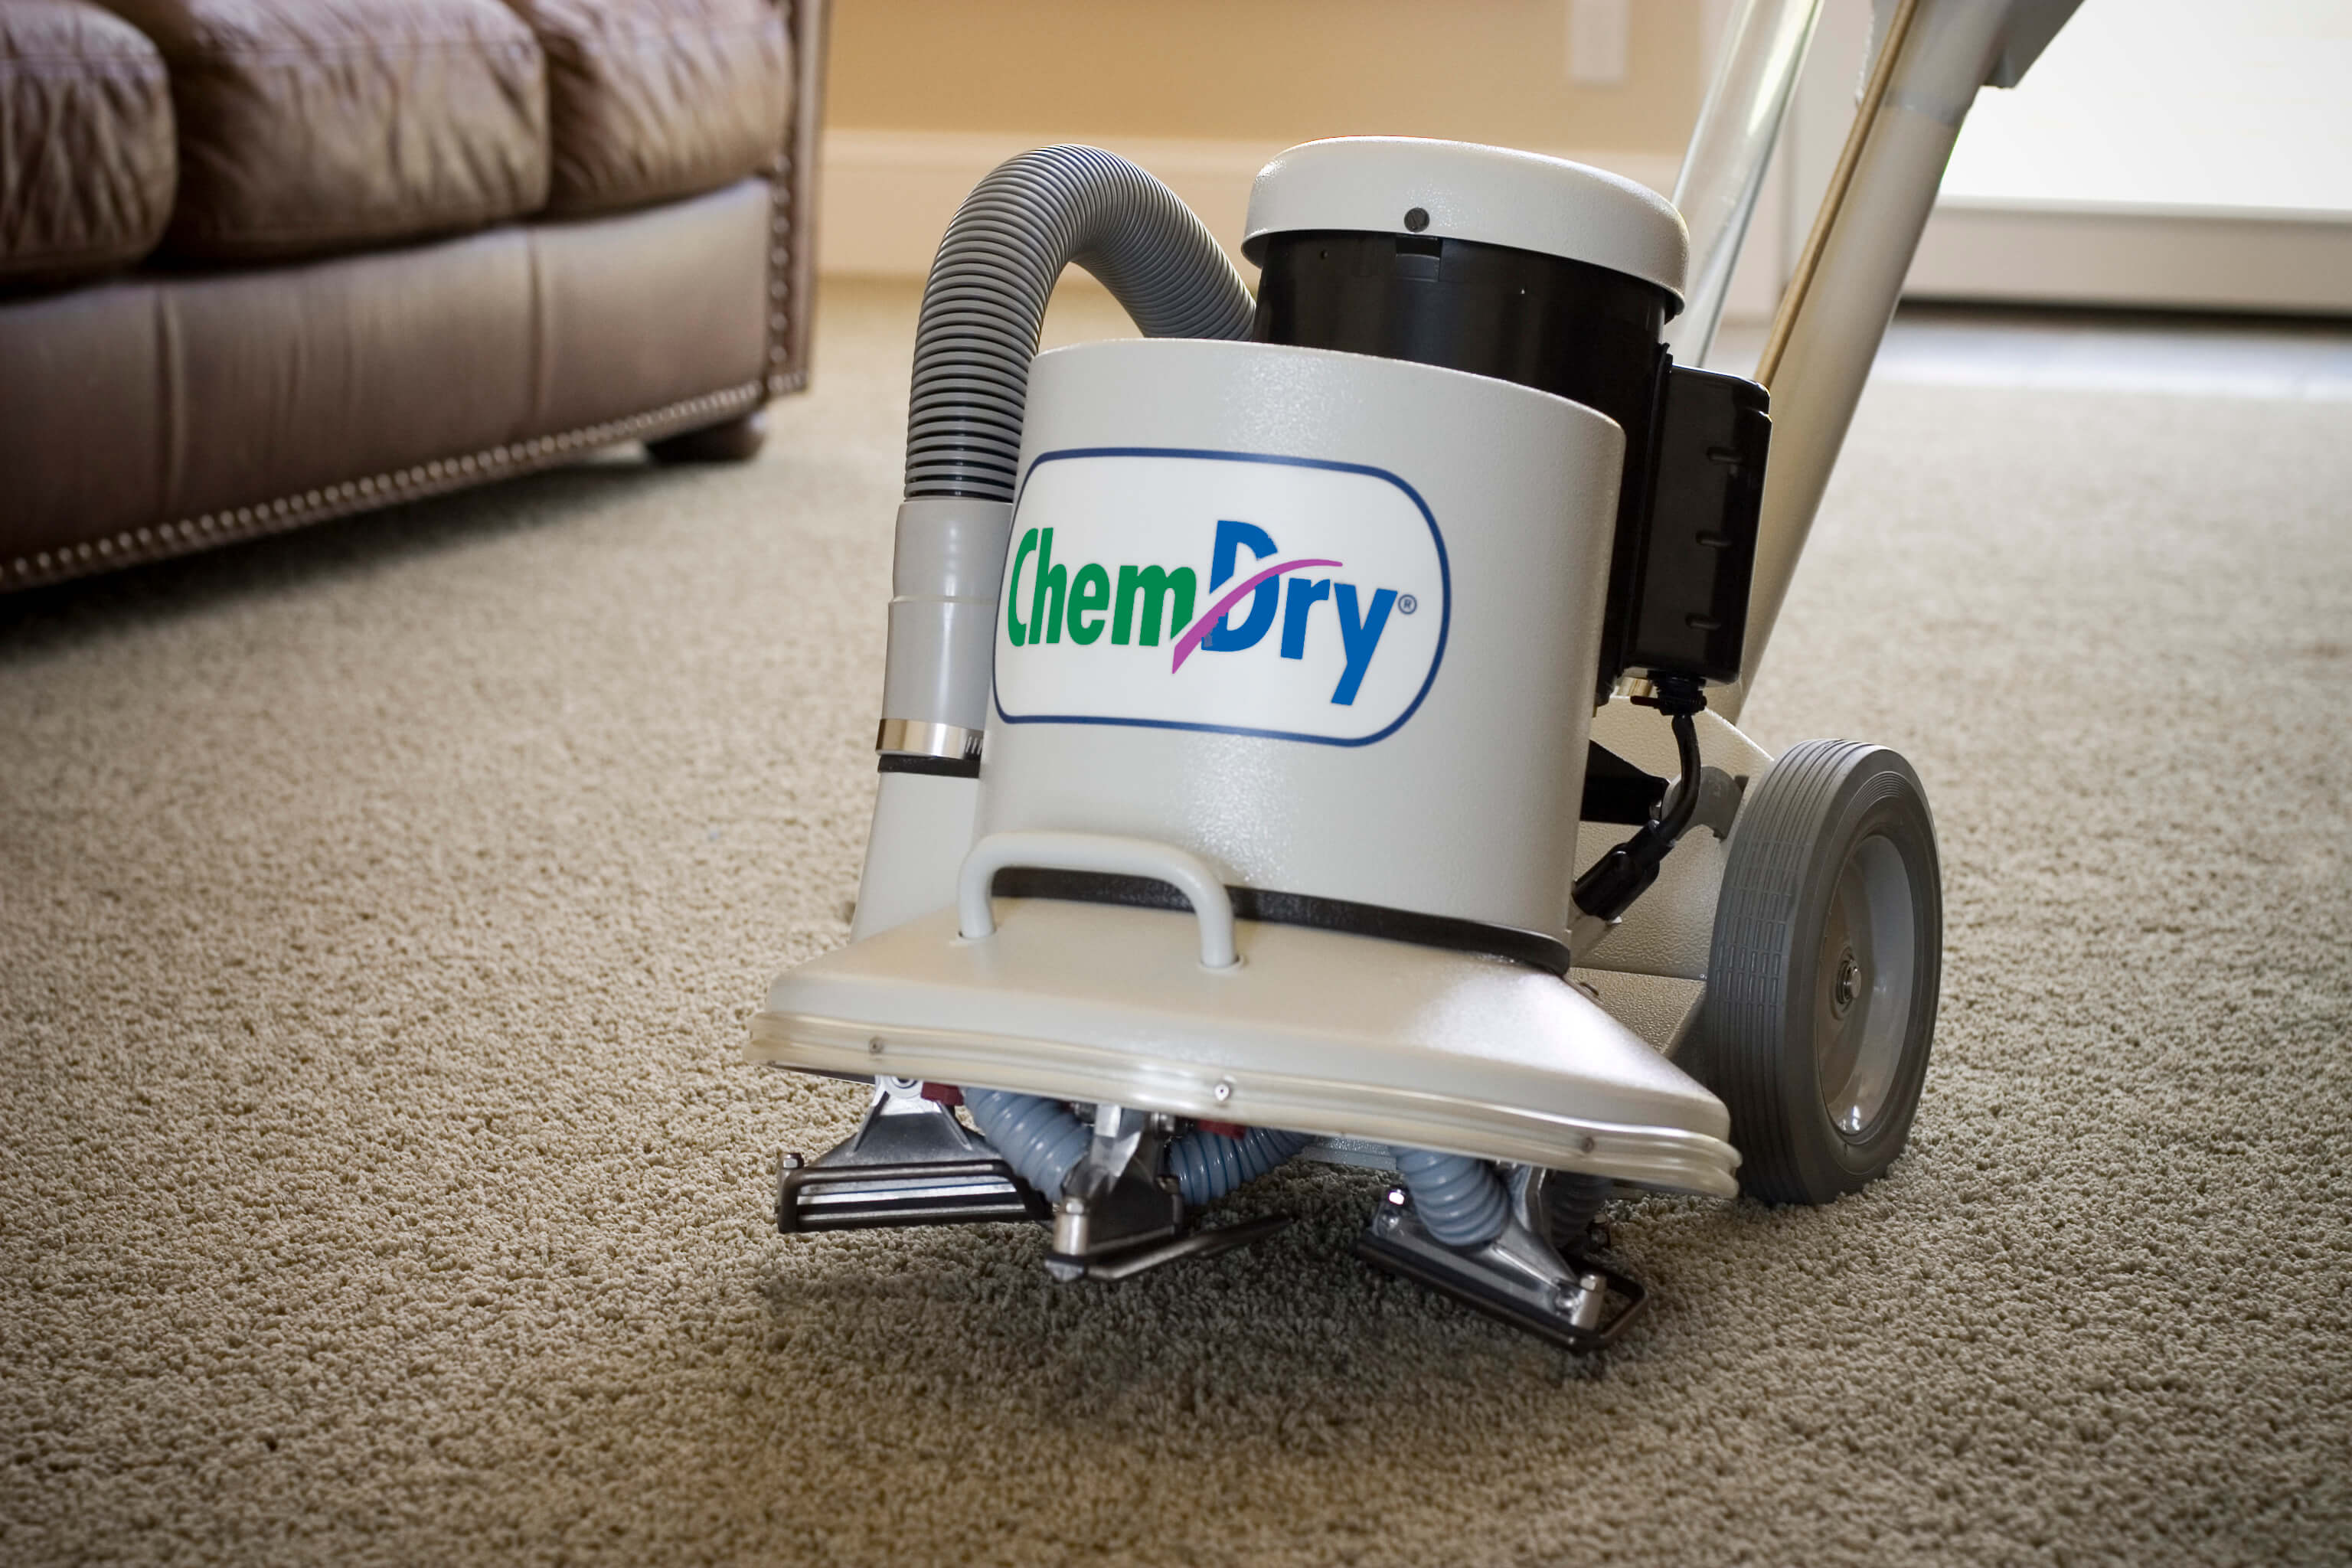 chem dry carpet cleaning greensboro close up